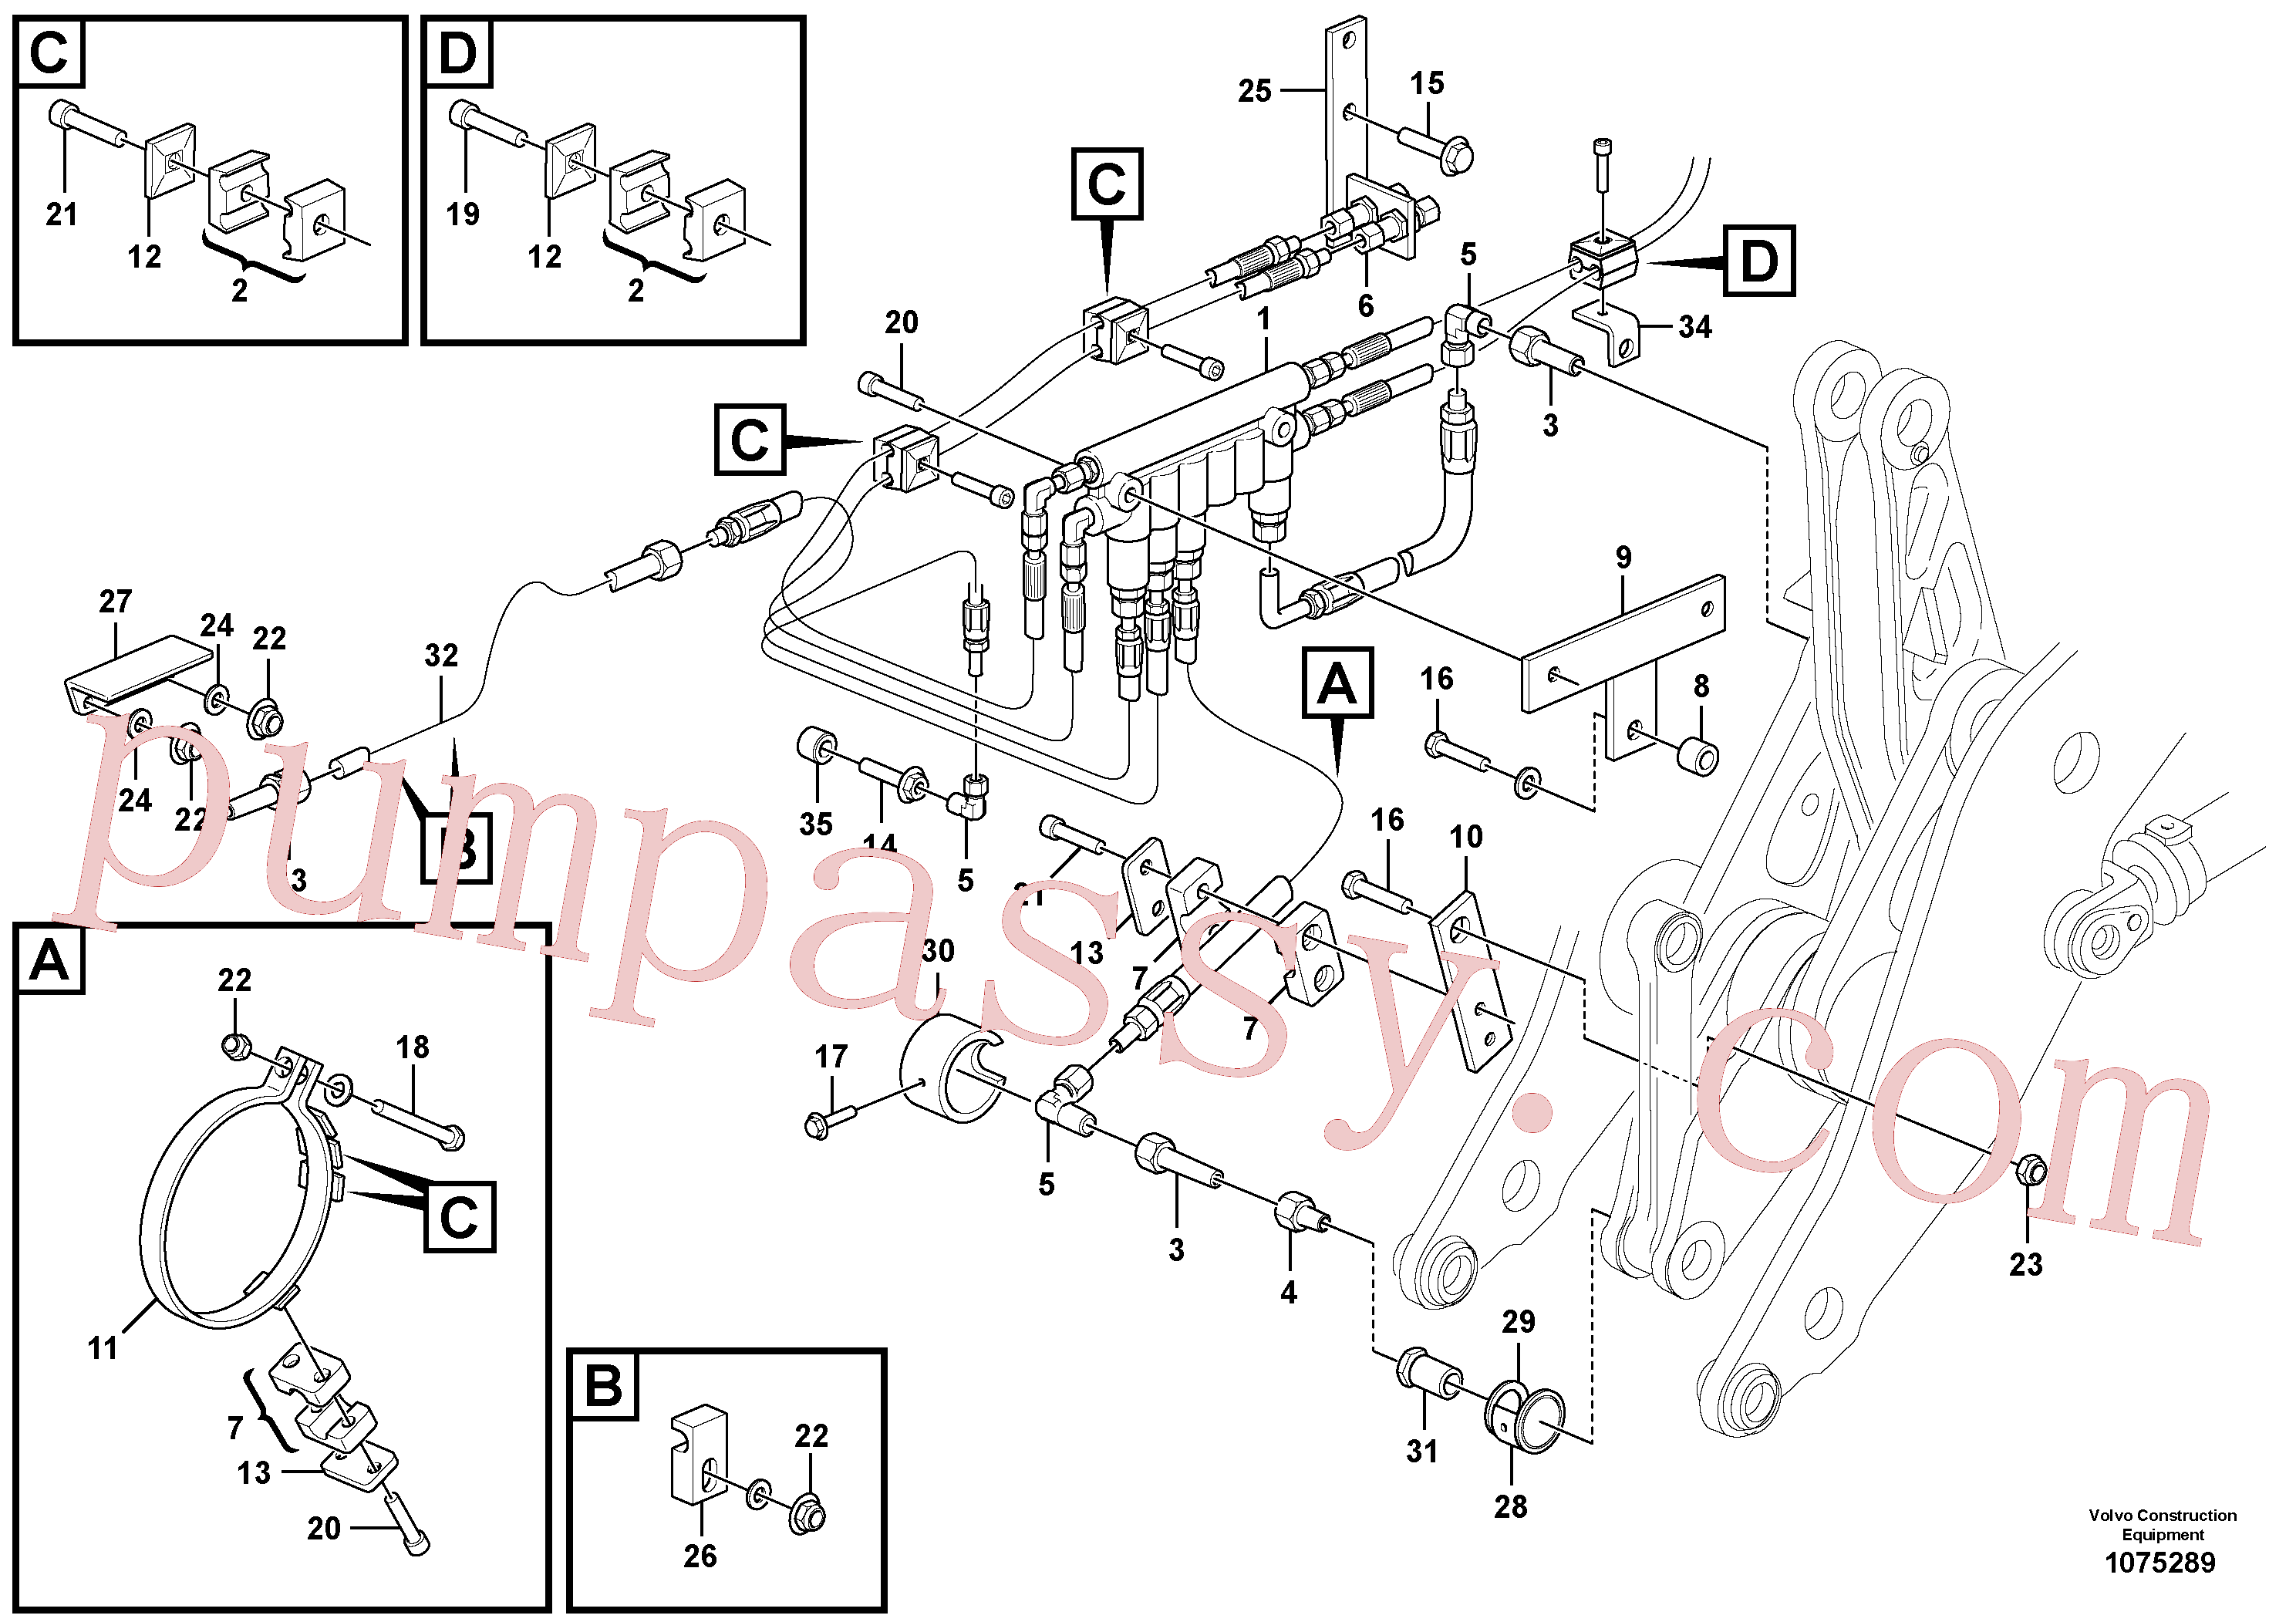 VOE16868977 for Volvo Central lubrication with fitting parts. B2(1075289 assembly)